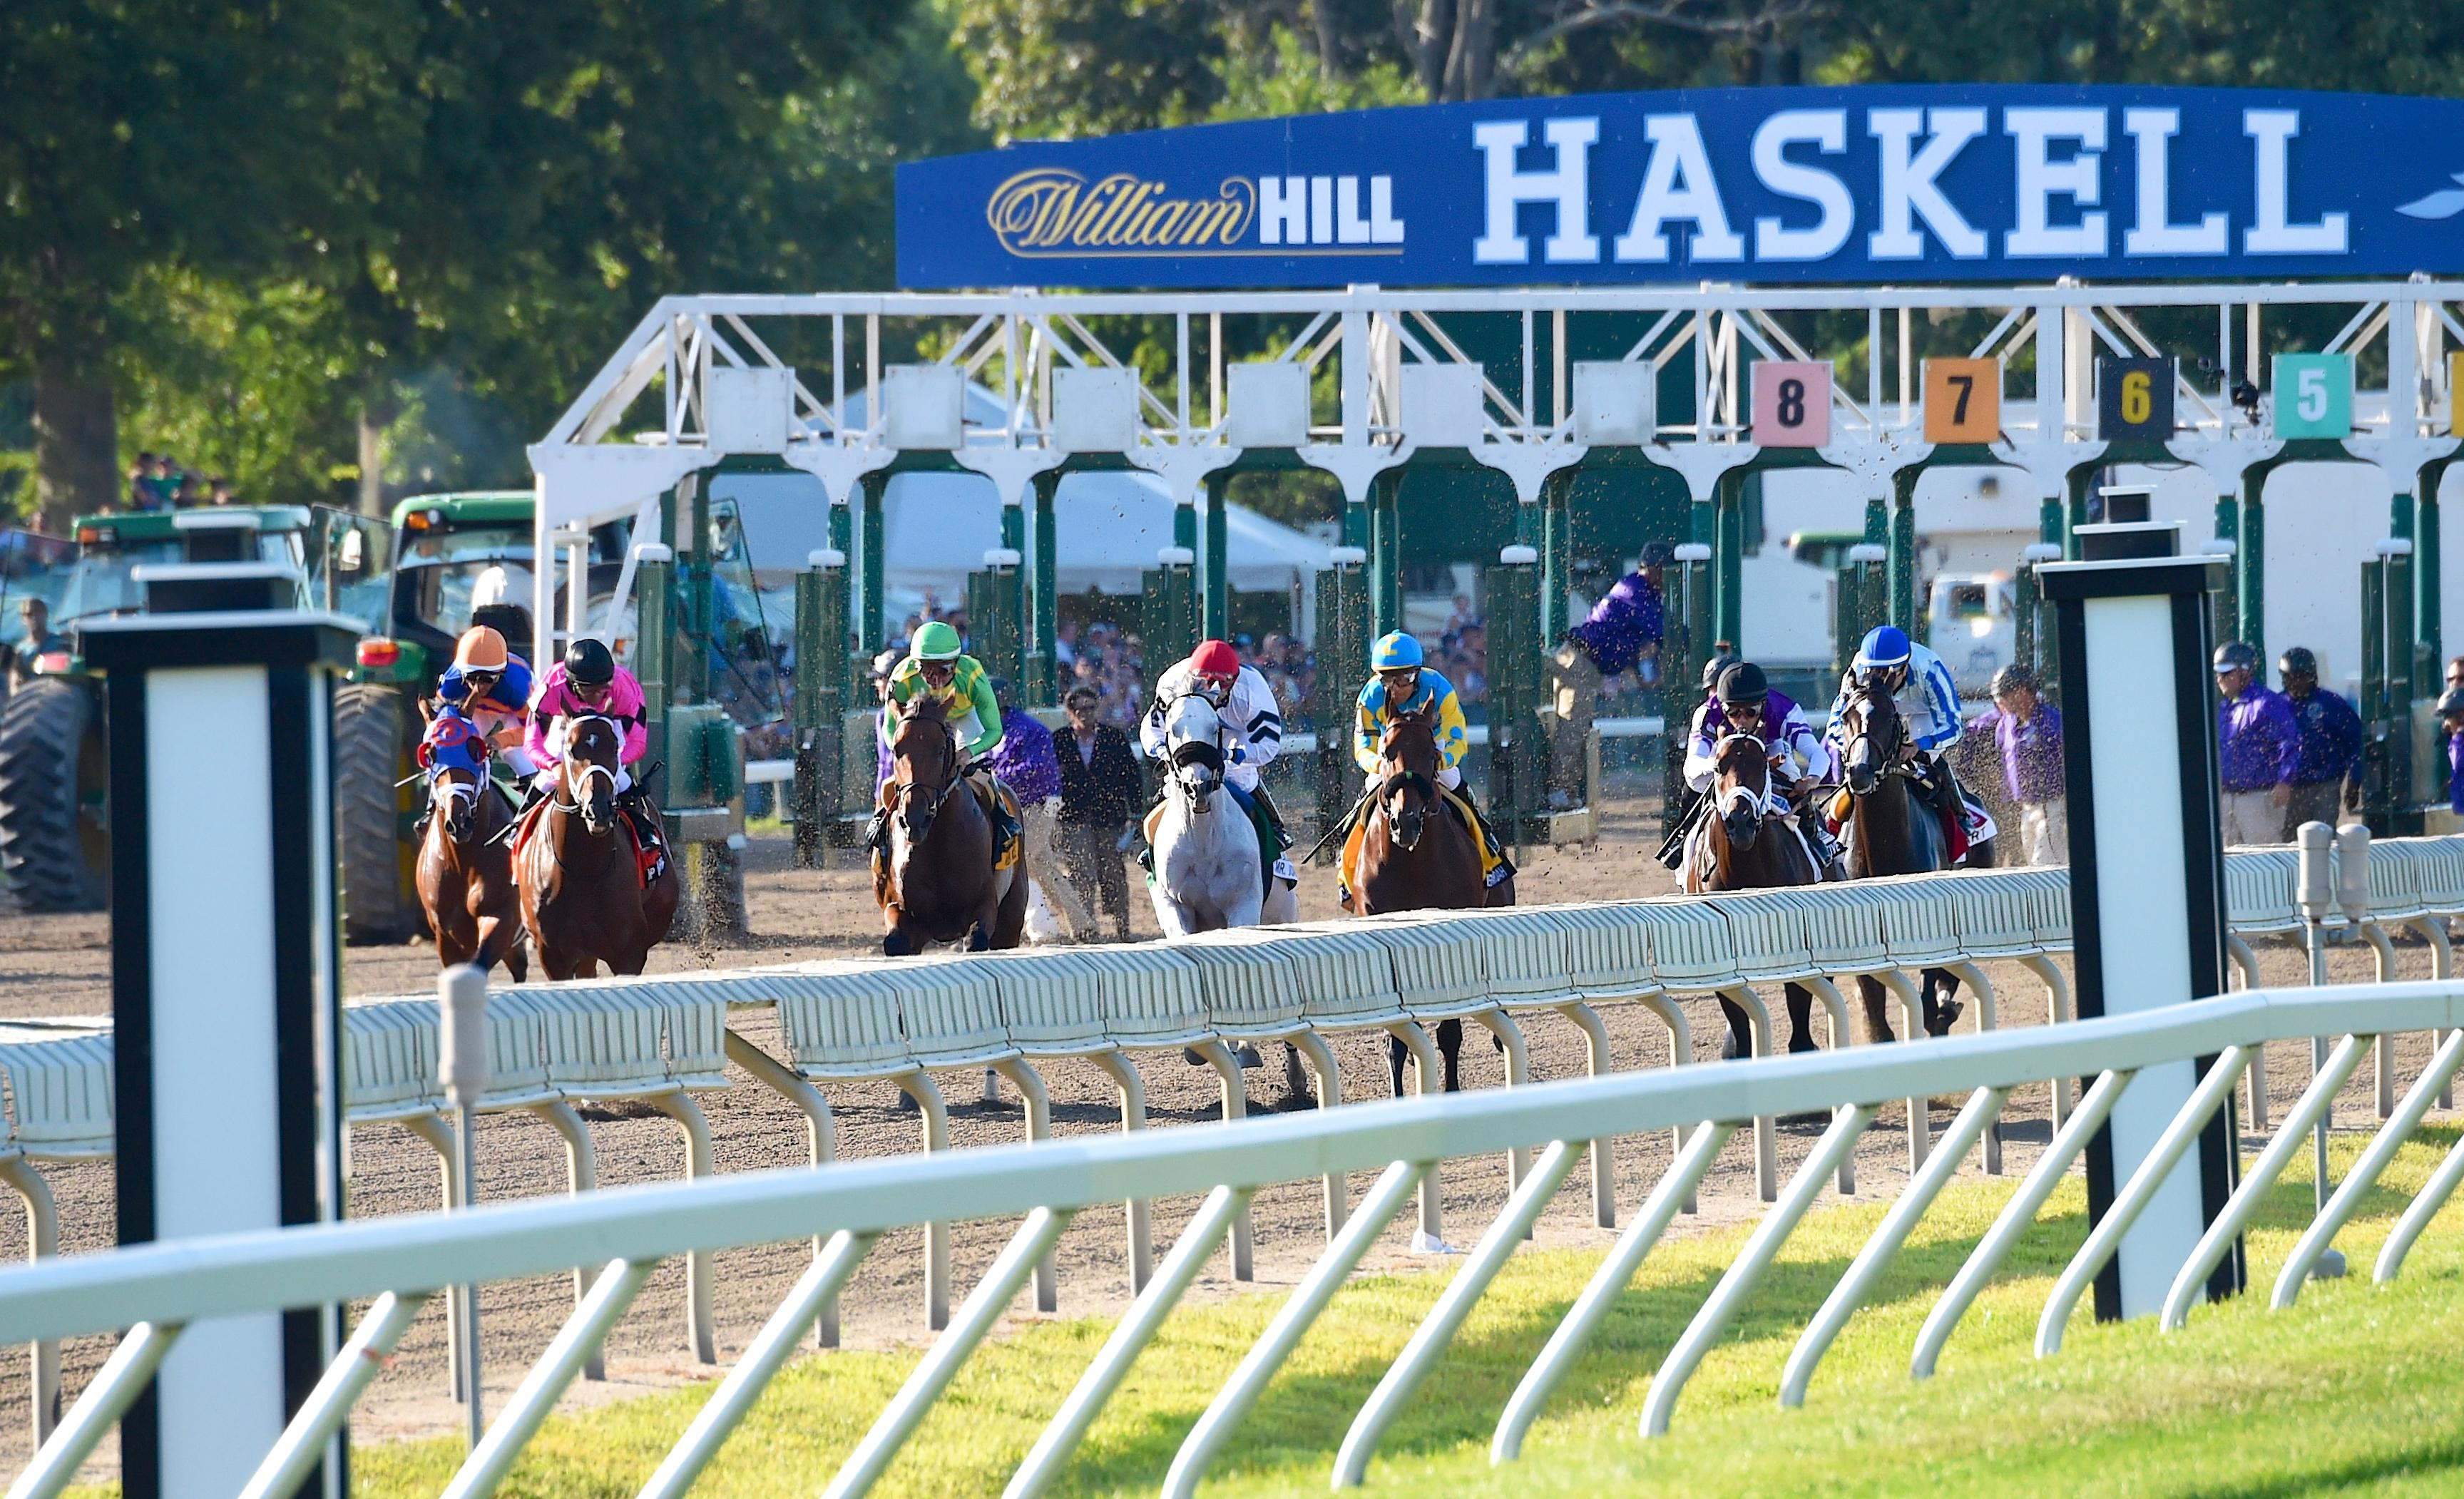 Haskell day draws huge crowds to Monmouth annually.